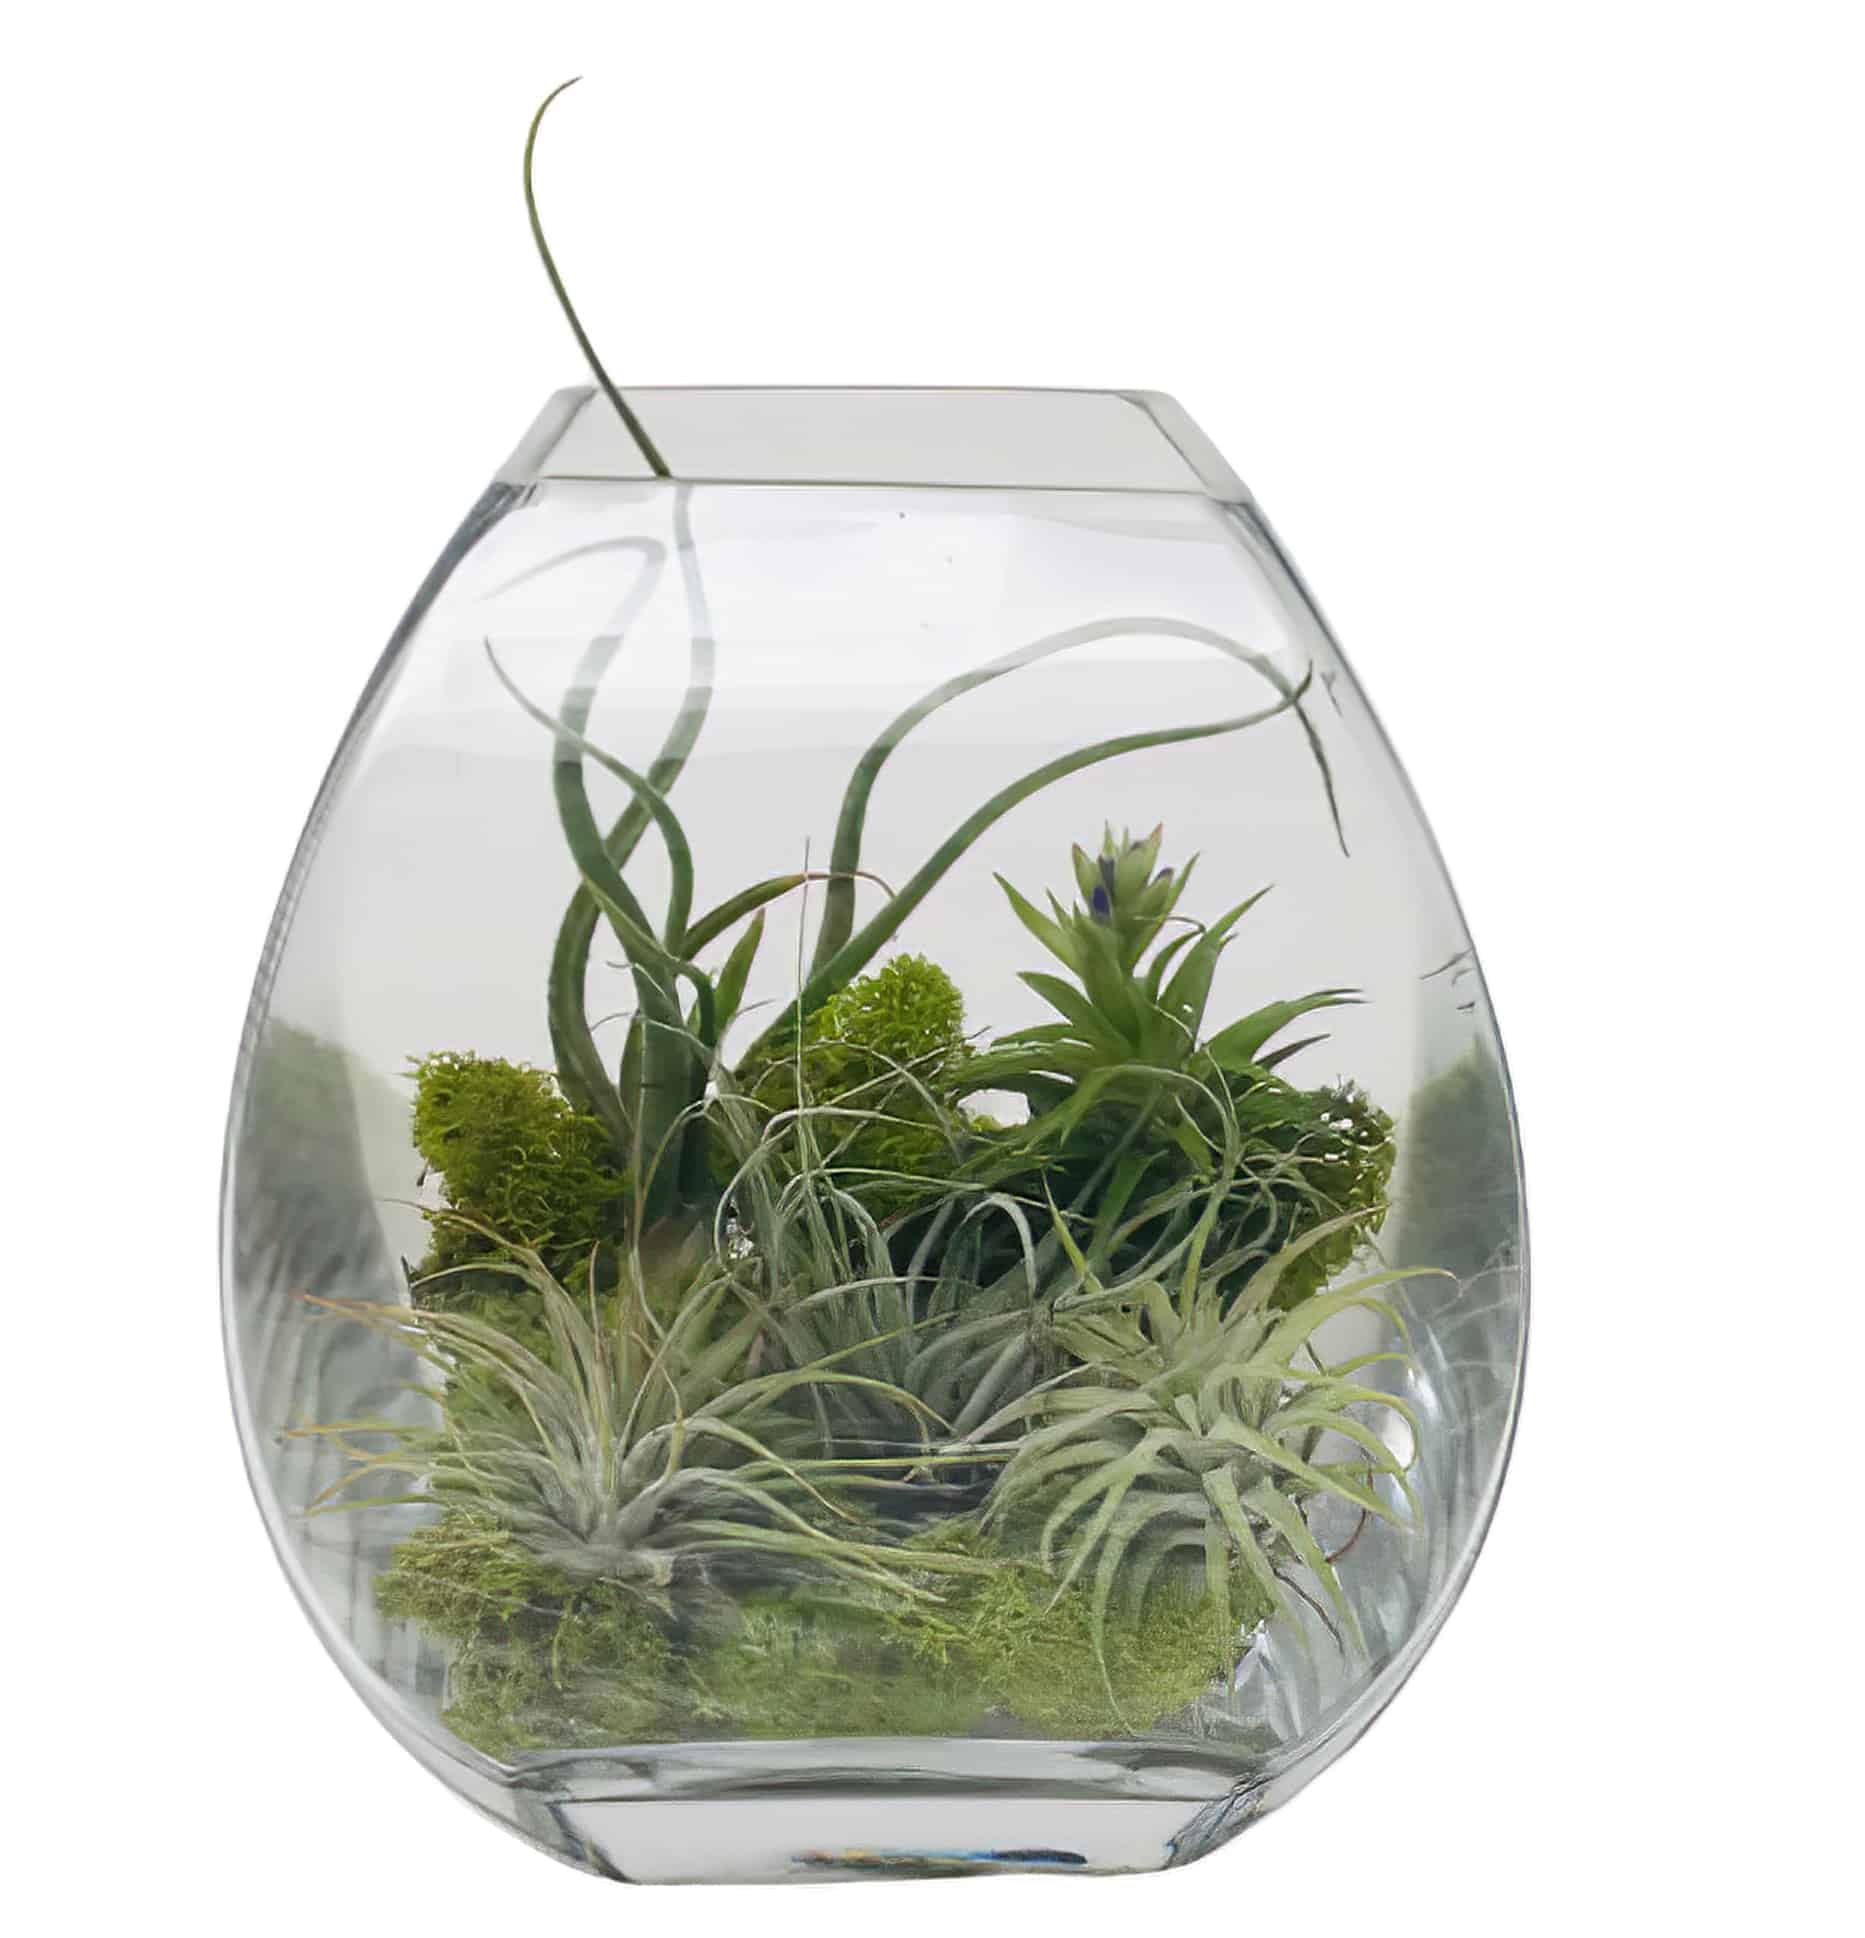 Air Plant Terrarium | San Francisco Florist Since 1871 Free Bay Area and San Francisco Flower Delivery